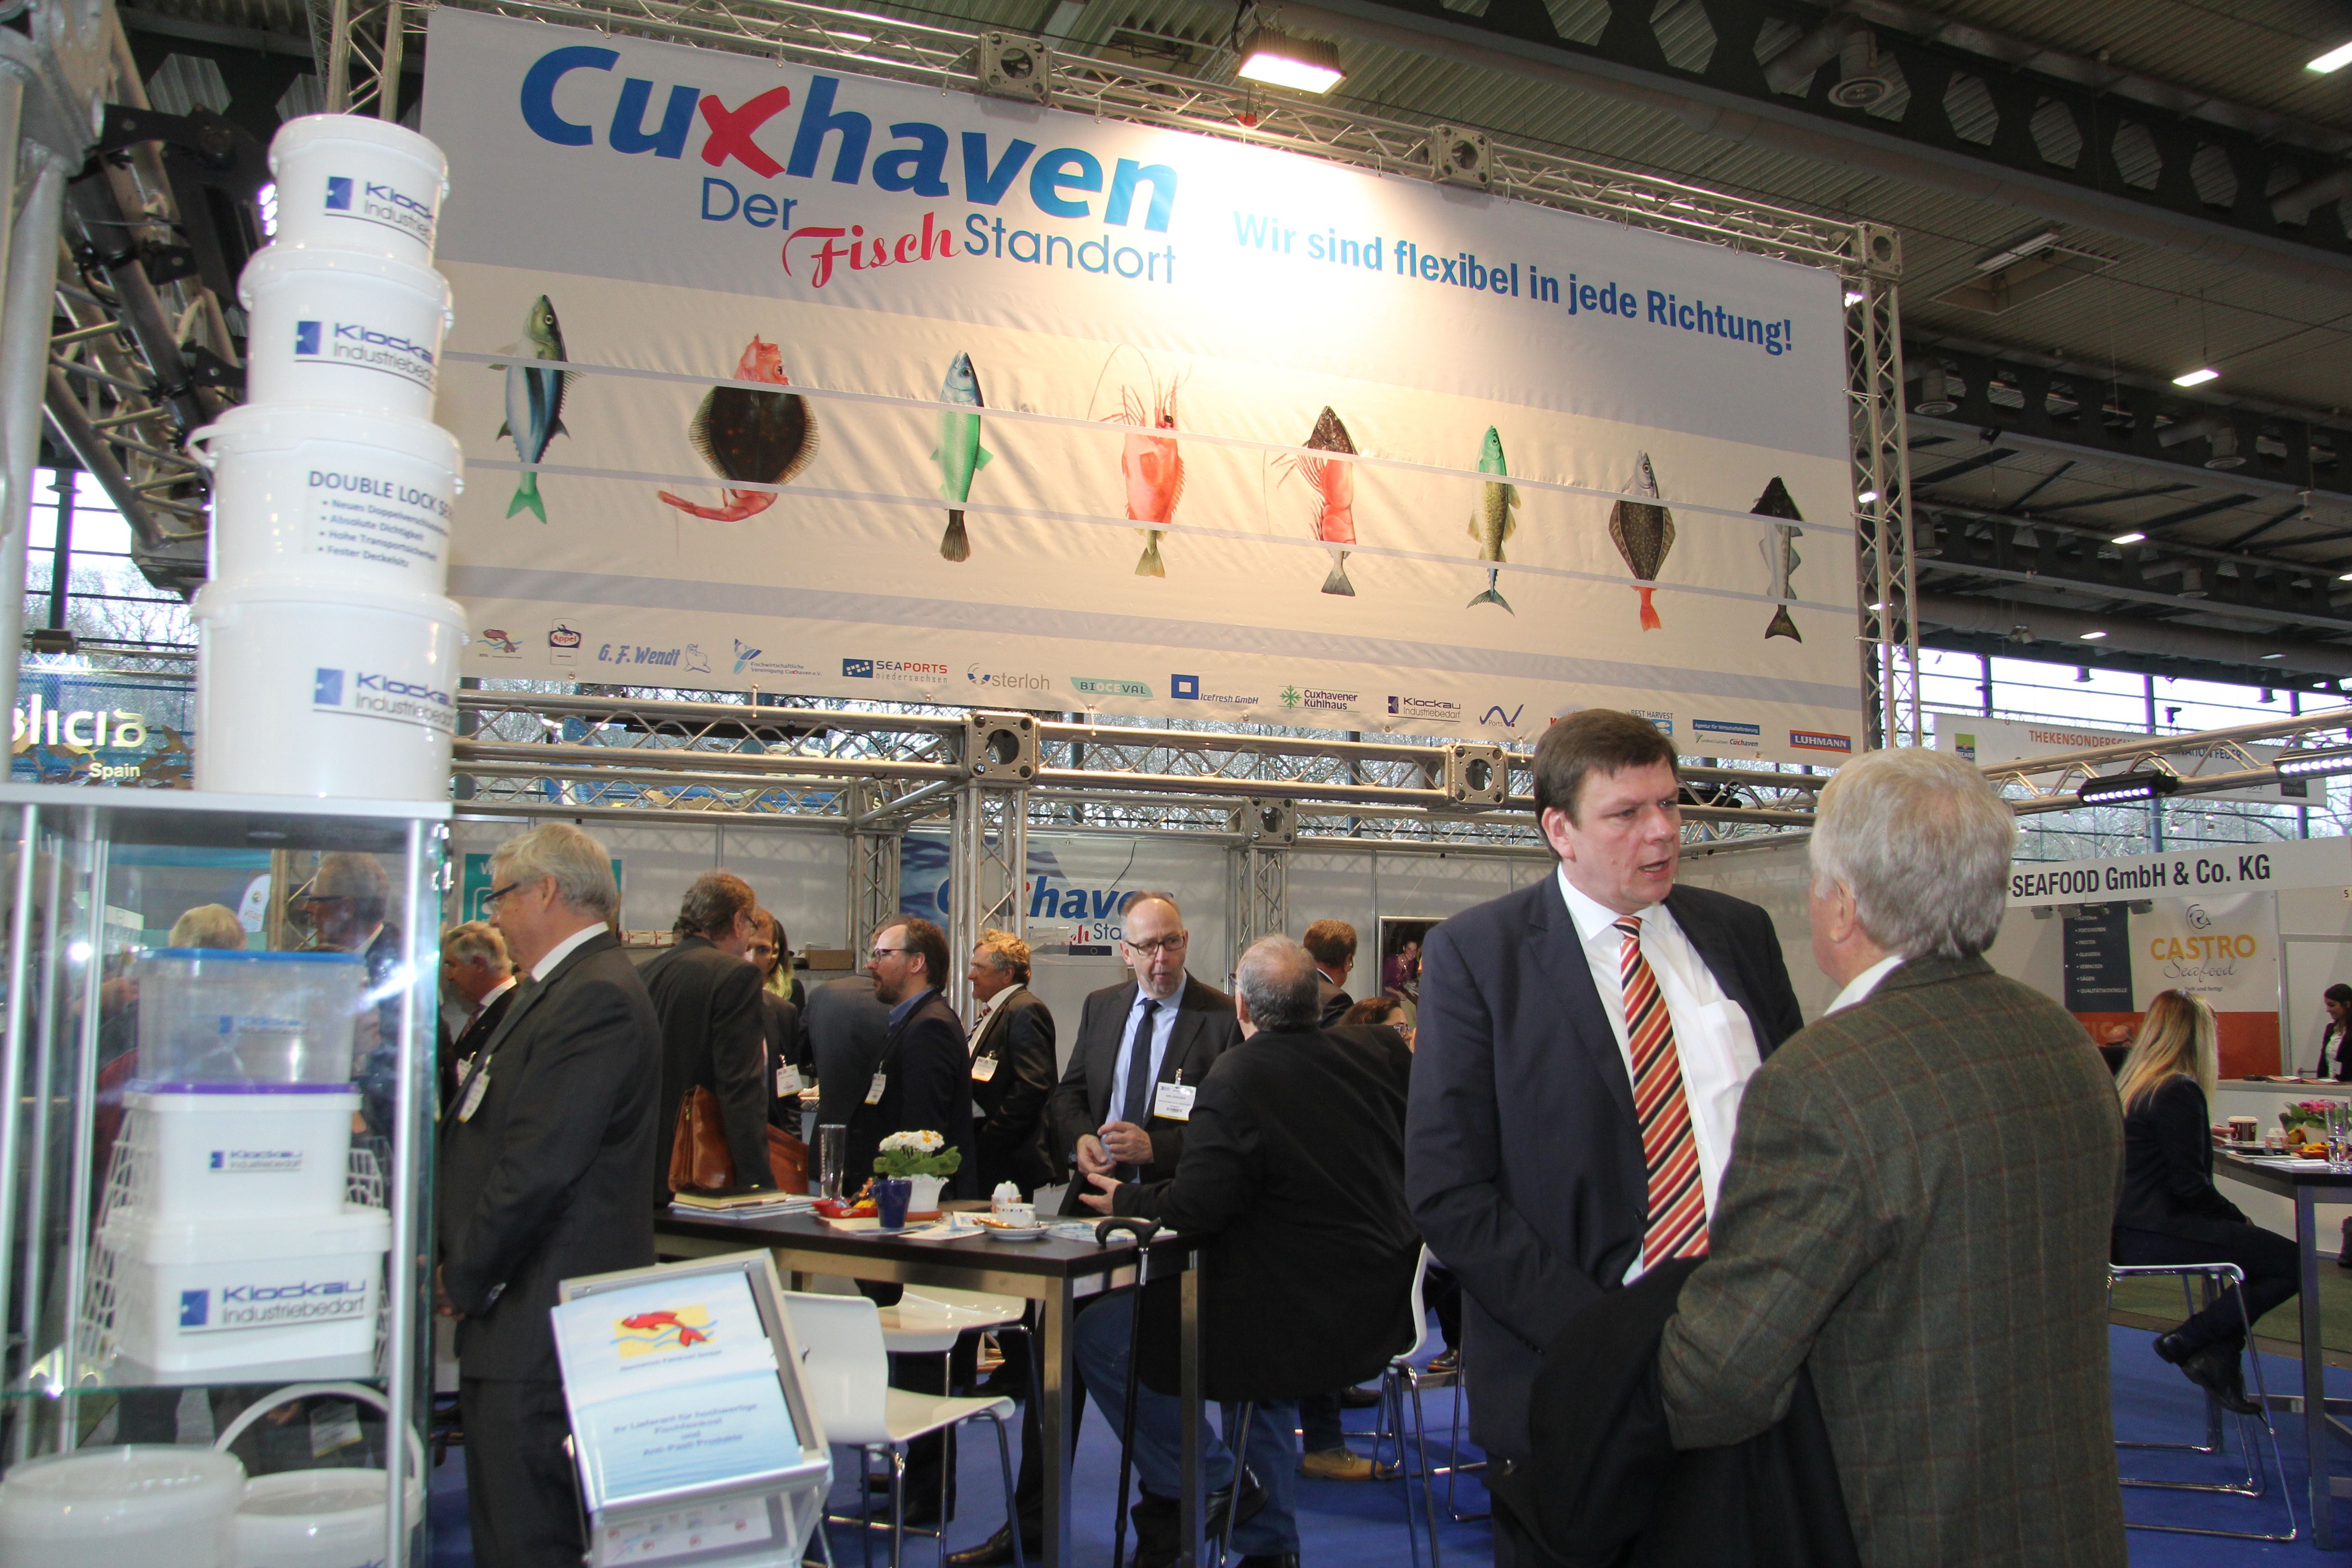 The Cuxhaven stand at the last fish international in 2016. Copyrigth: Thomas Sassen